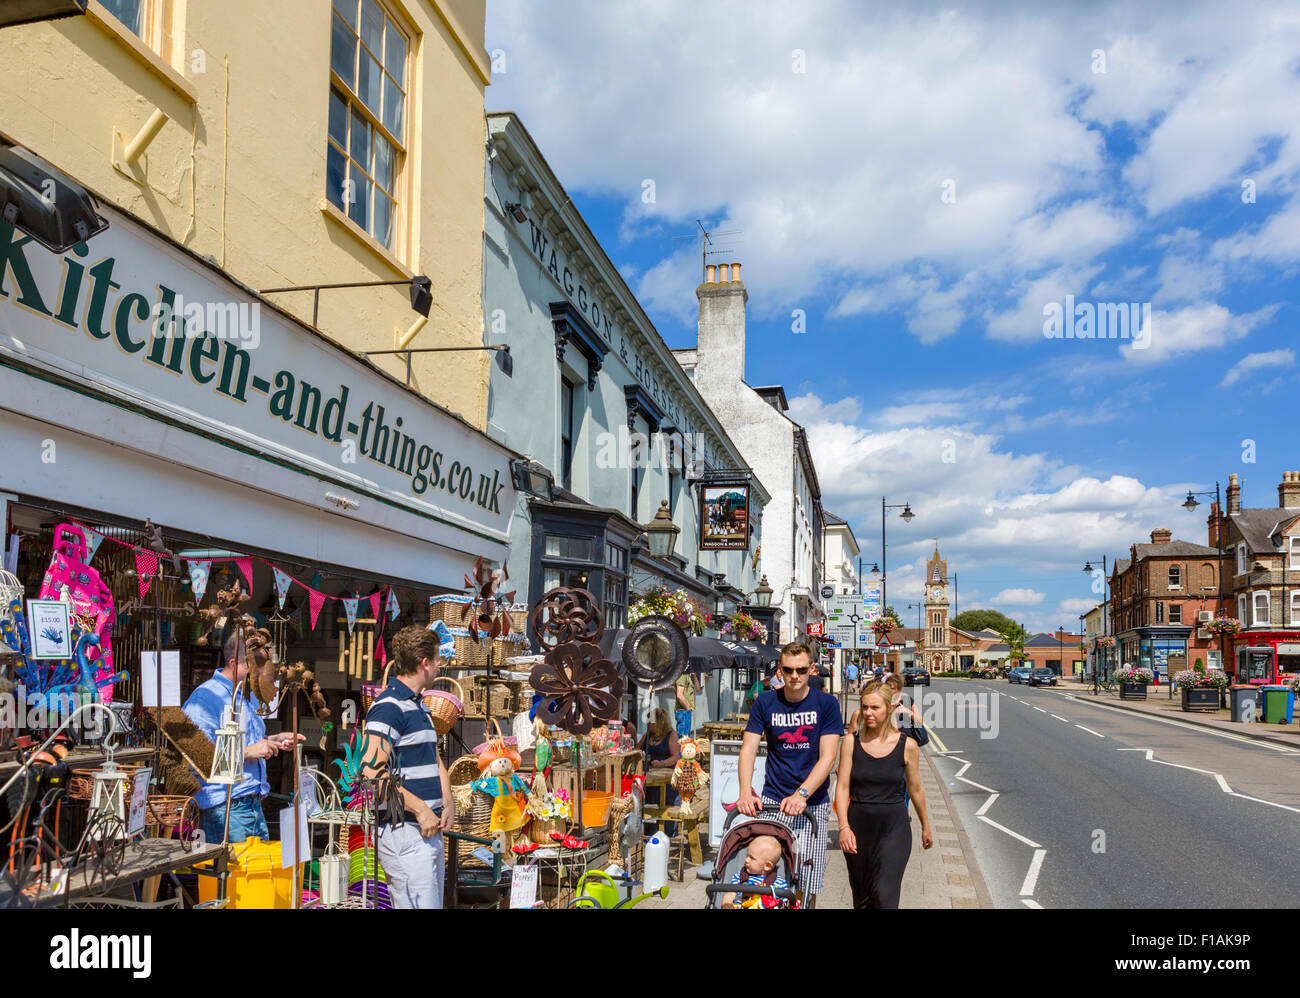 Shops on the High Street, Newmarket, Suffolk, England, UK - Stock Image